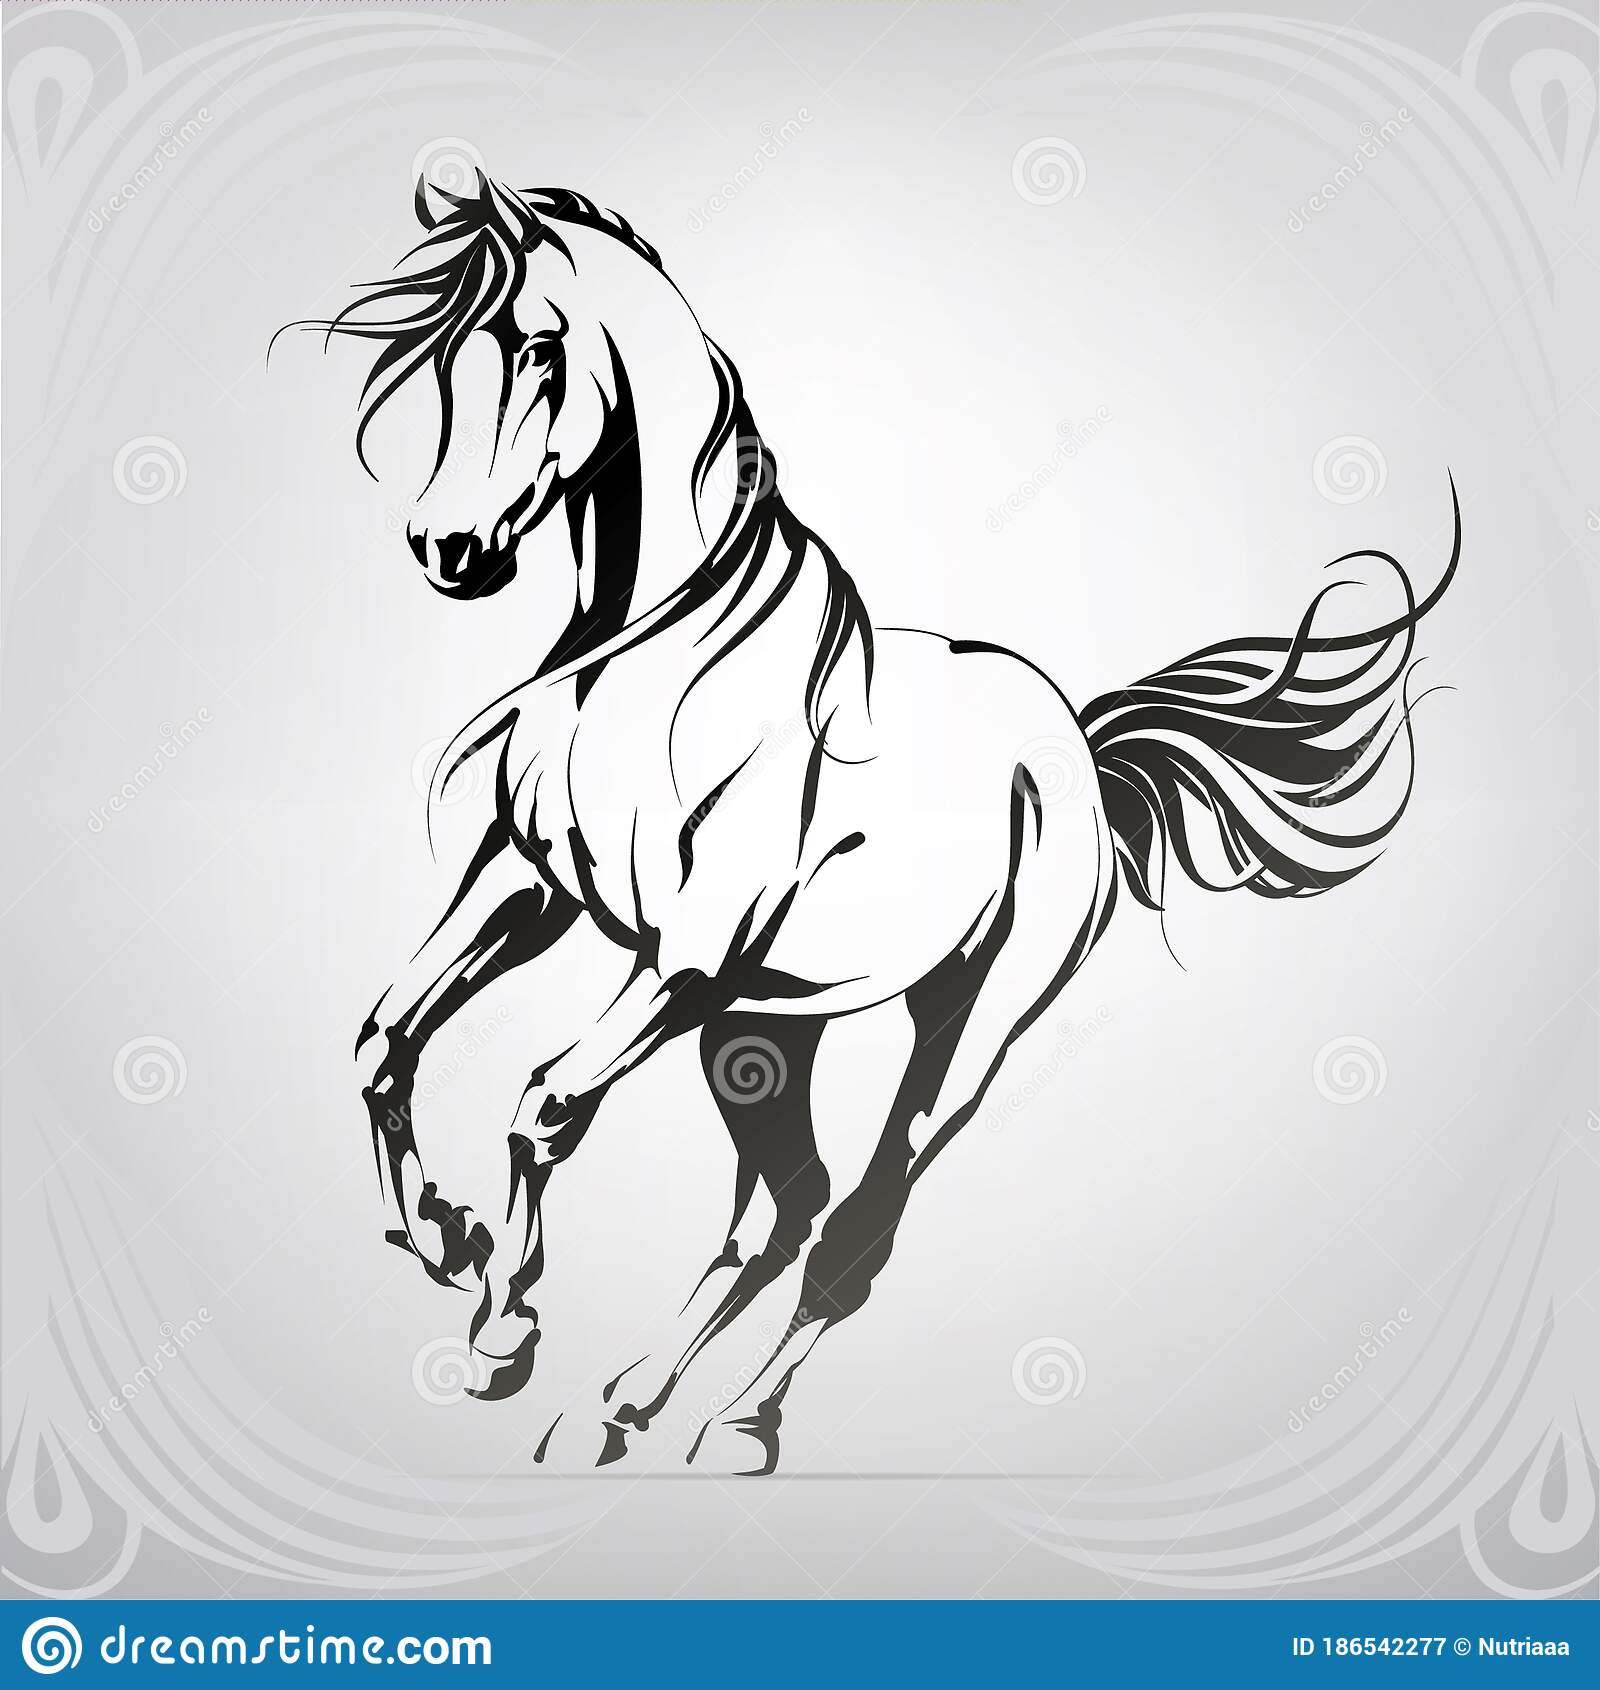 Running Horse Stock Illustrations 9 789 Running Horse Stock Illustrations Vectors Clipart Dreamstime